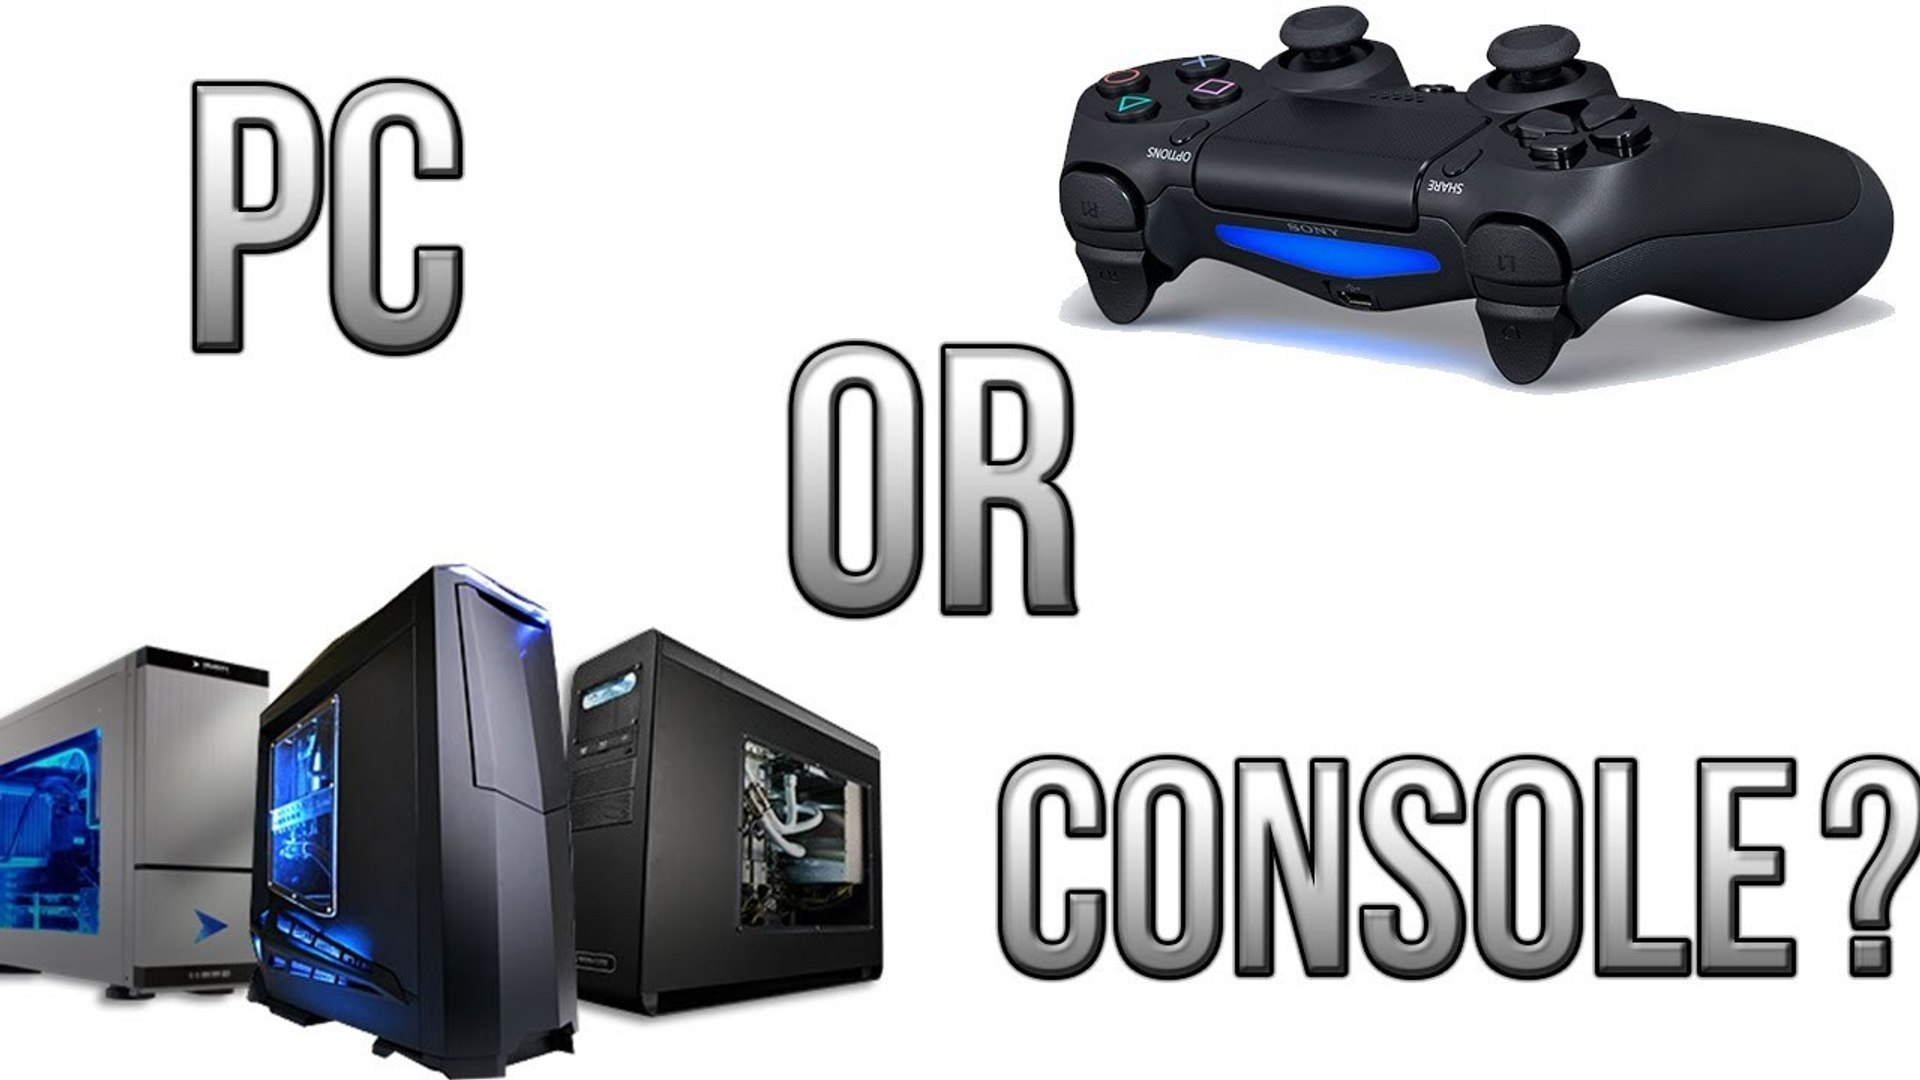 PC Gaming or Next Gen Consoles?   BF3 Gameplay